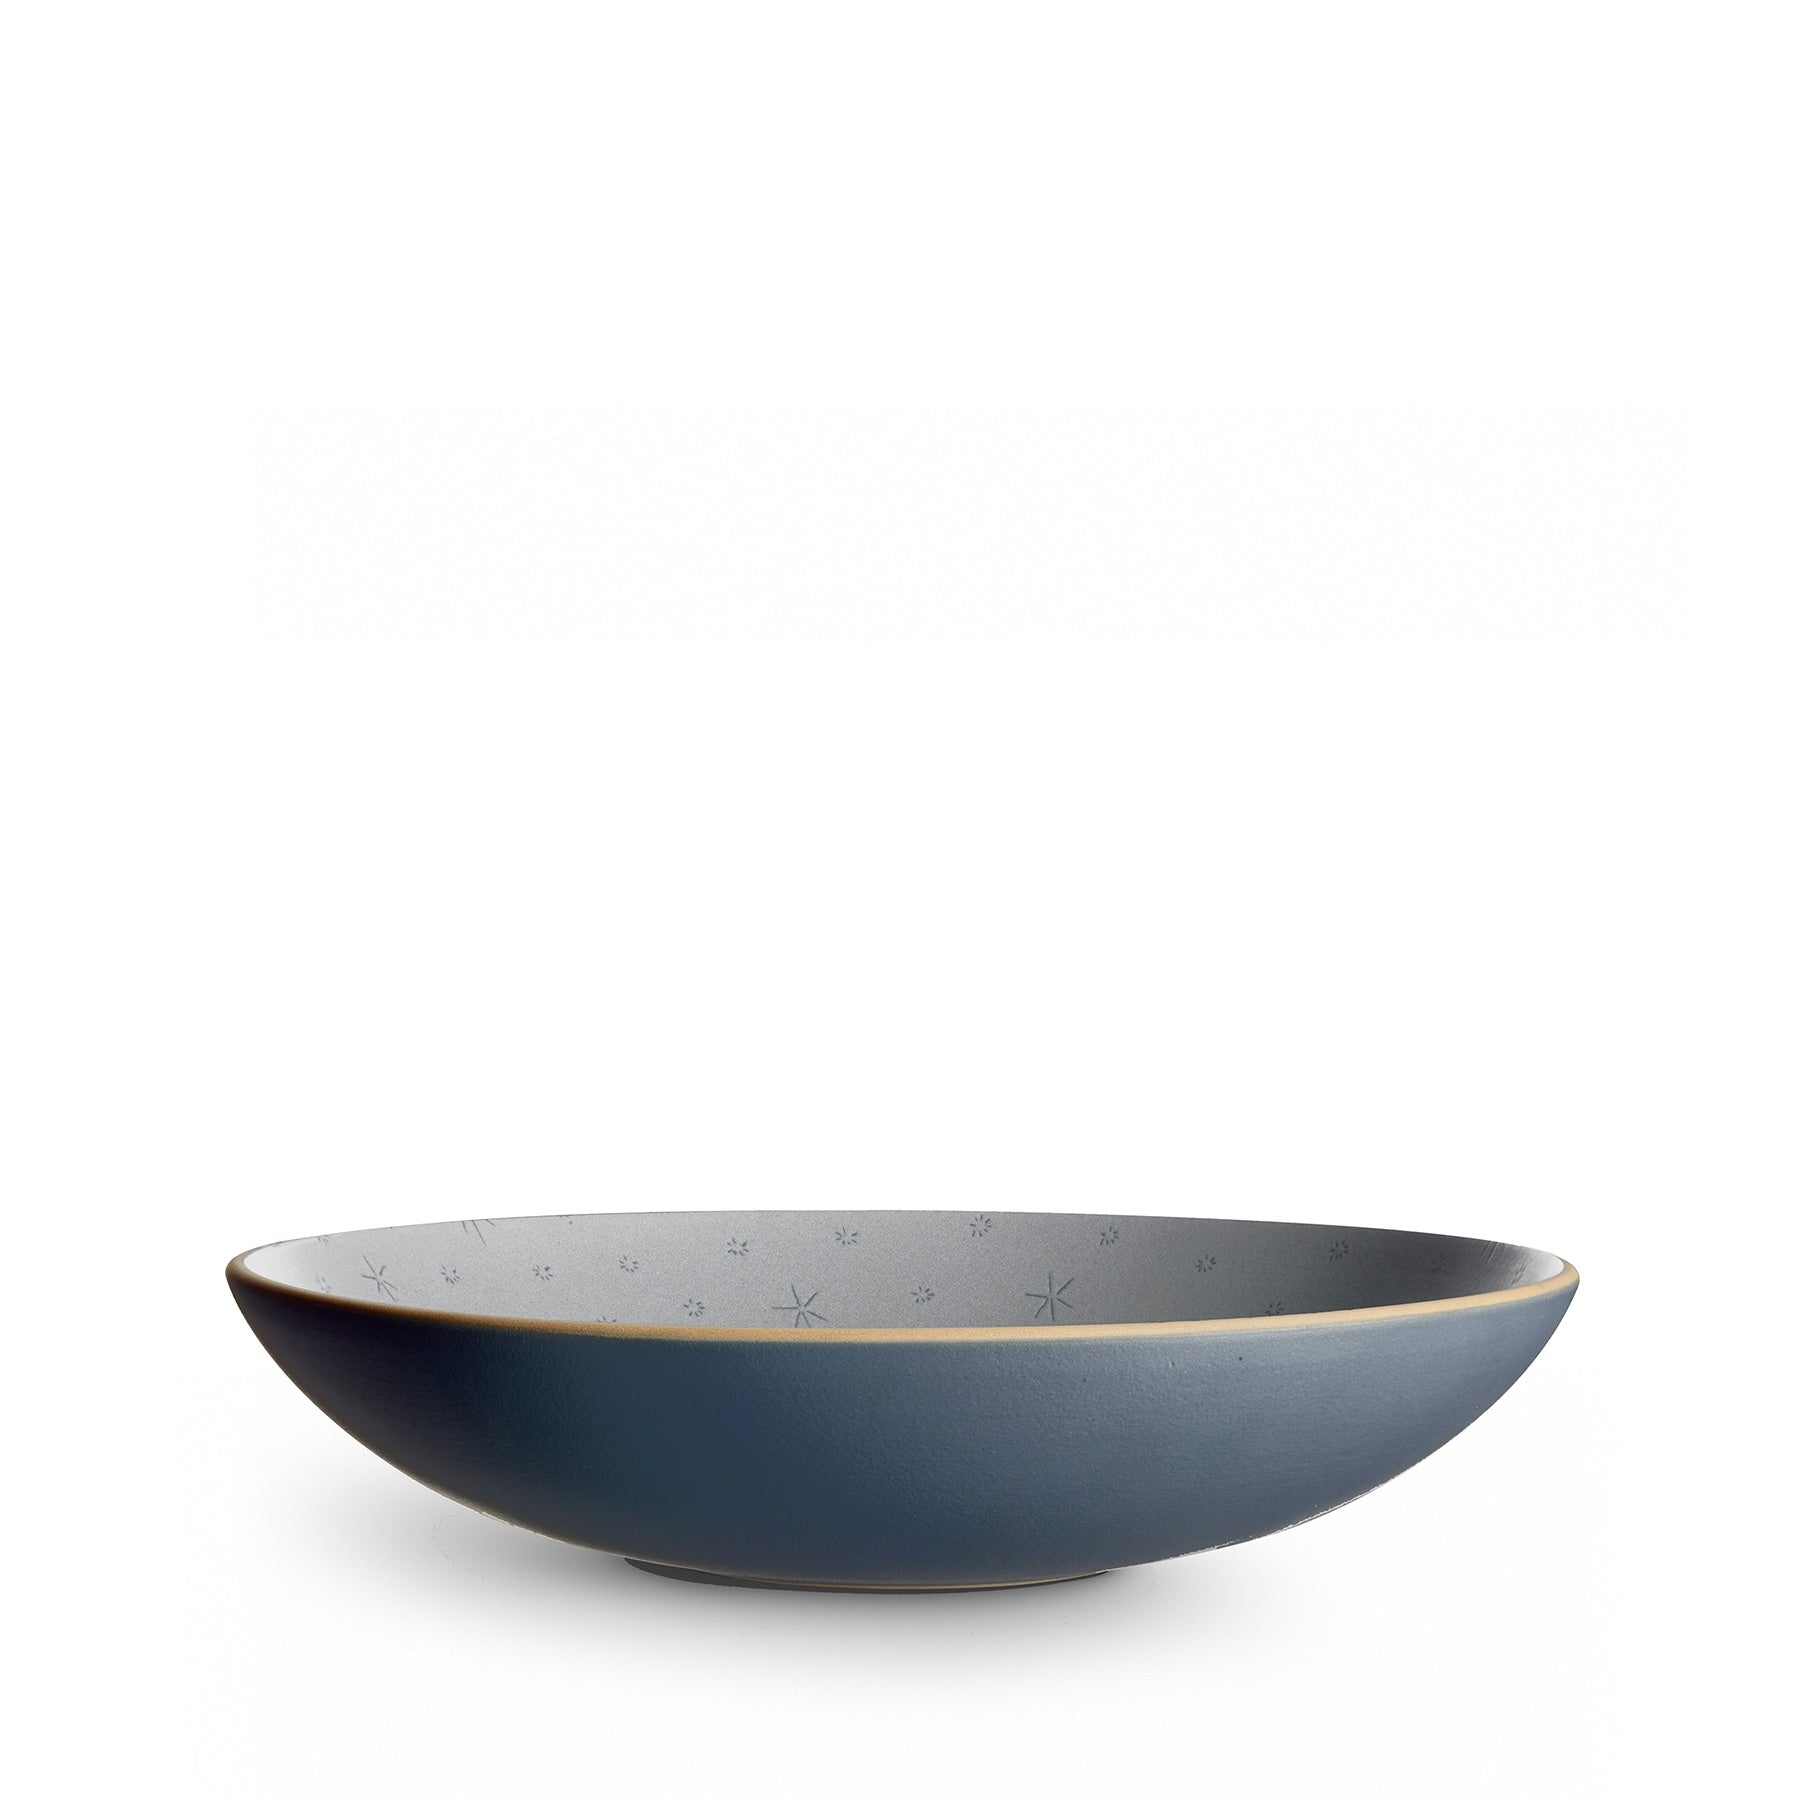 Stitched Etched Shallow Salad Bowl in Indigo Zoom Image 1